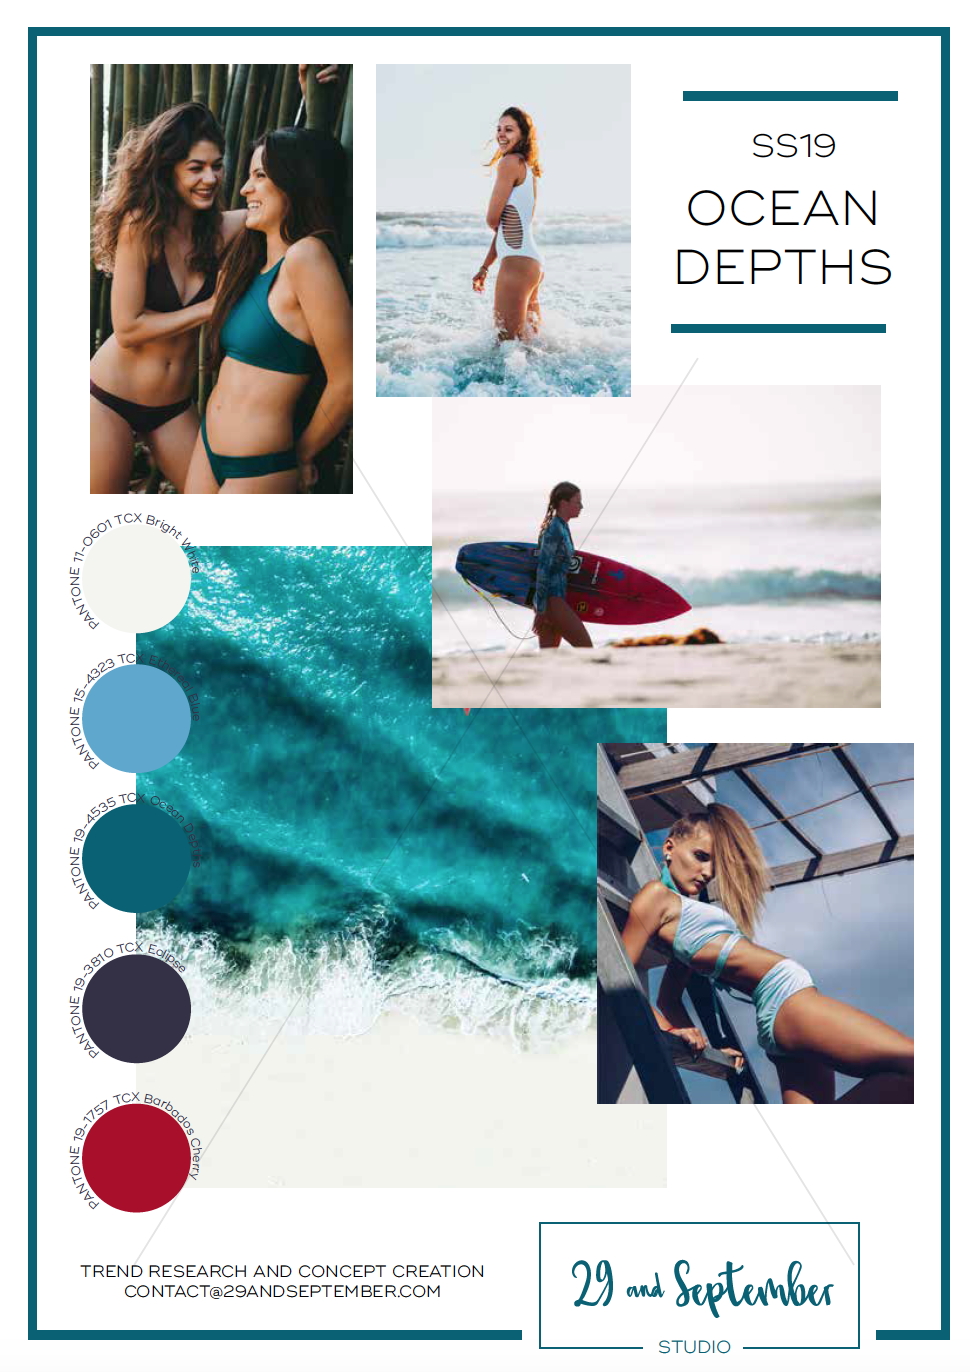 SS19 Women's Swimwear Trend Ocean Depths | Swim technical drawings for apparel by 29andSeptember Studio | Free fashion trend information